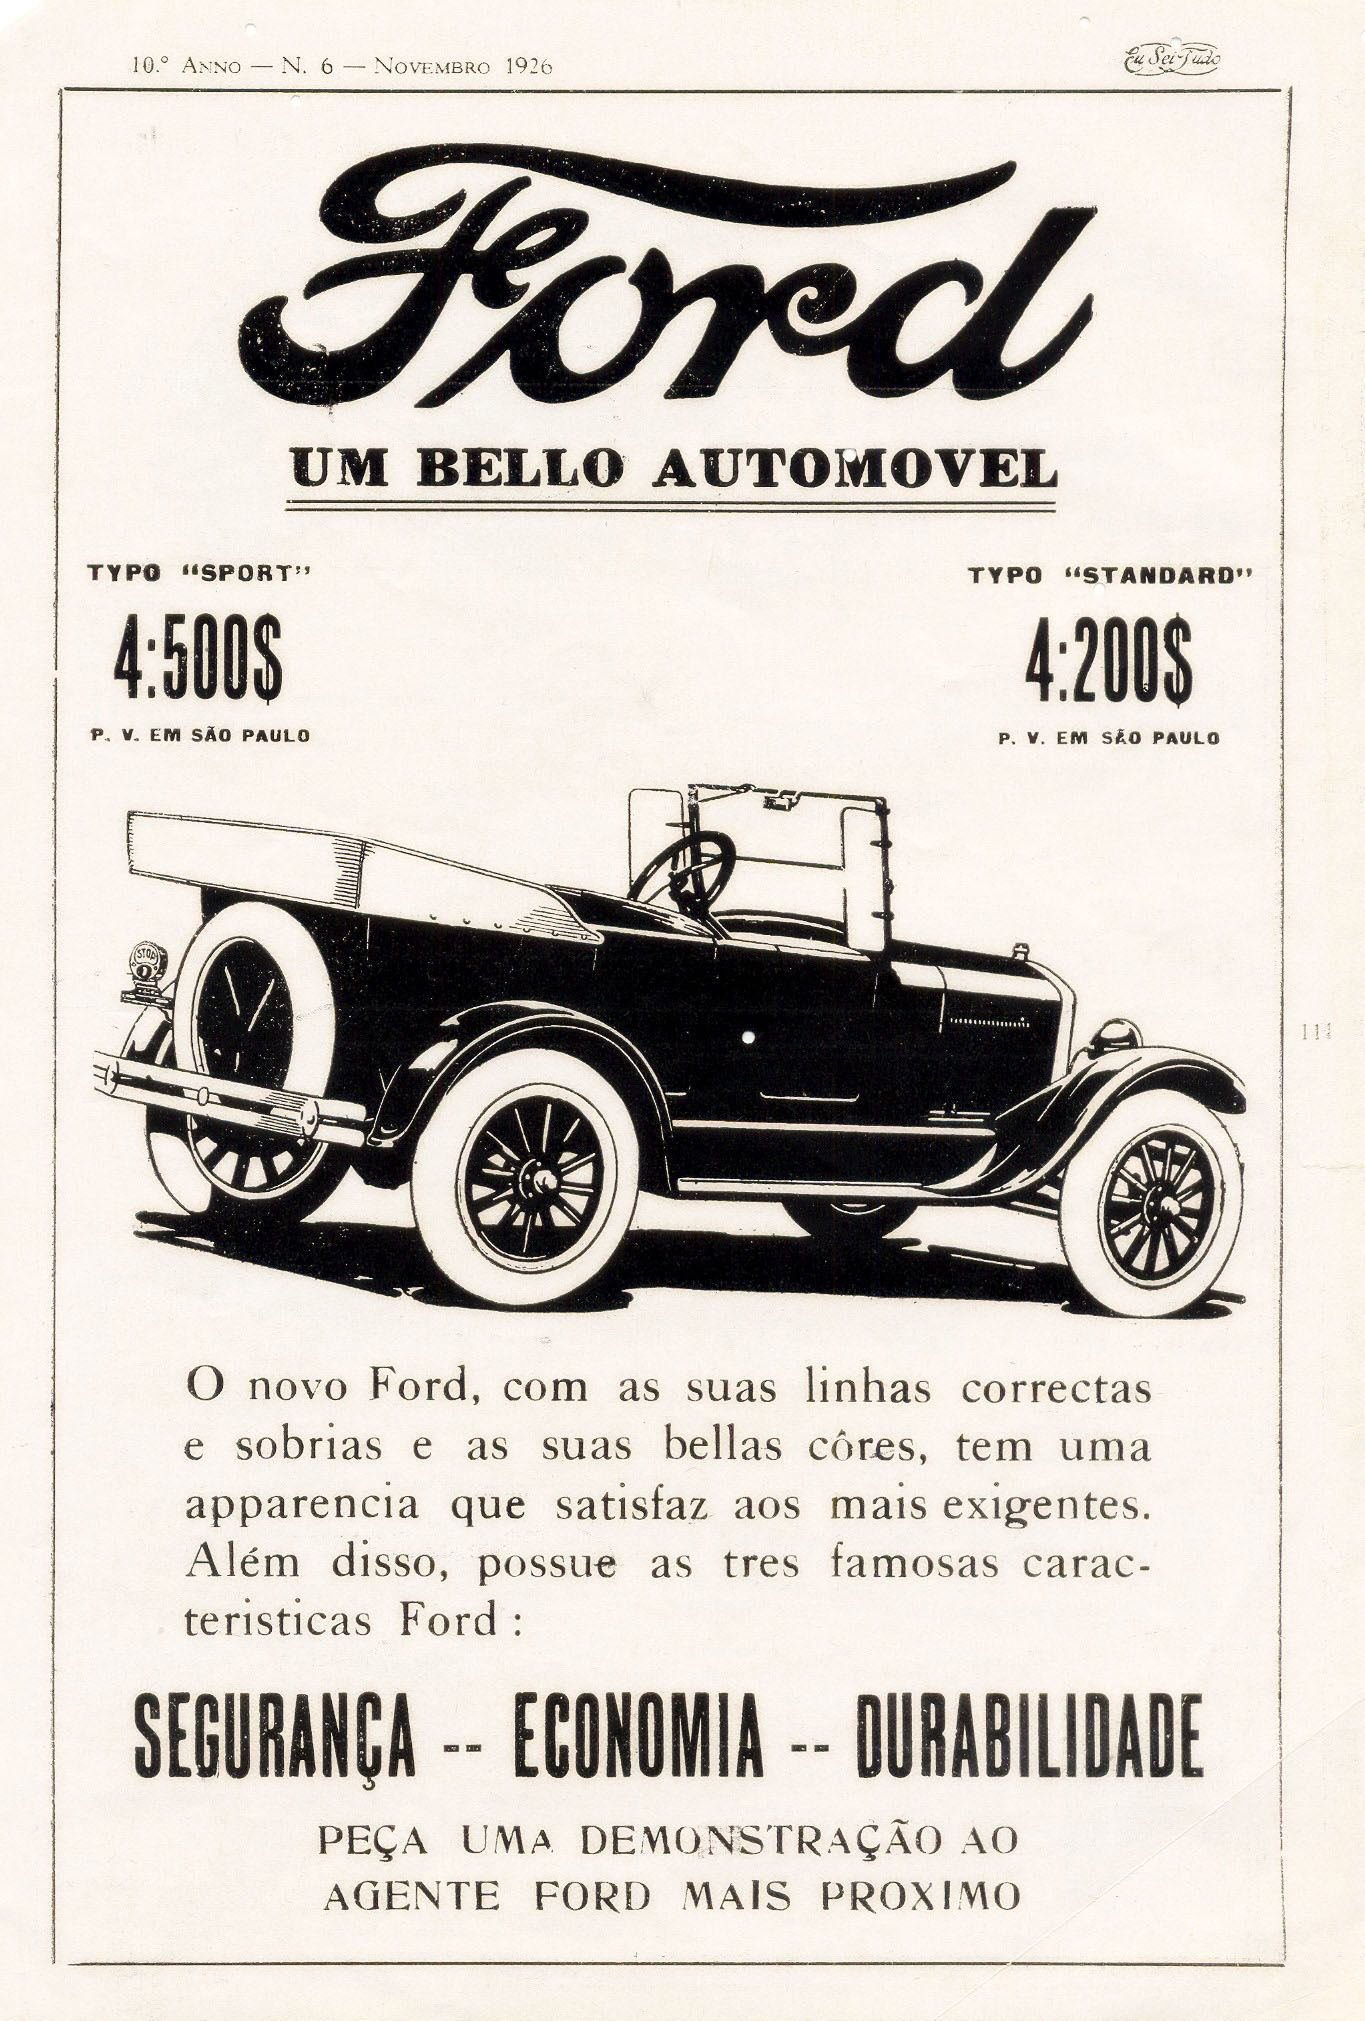 May 31, 1927 – The last Ford Model T rolls off the assembly line ...